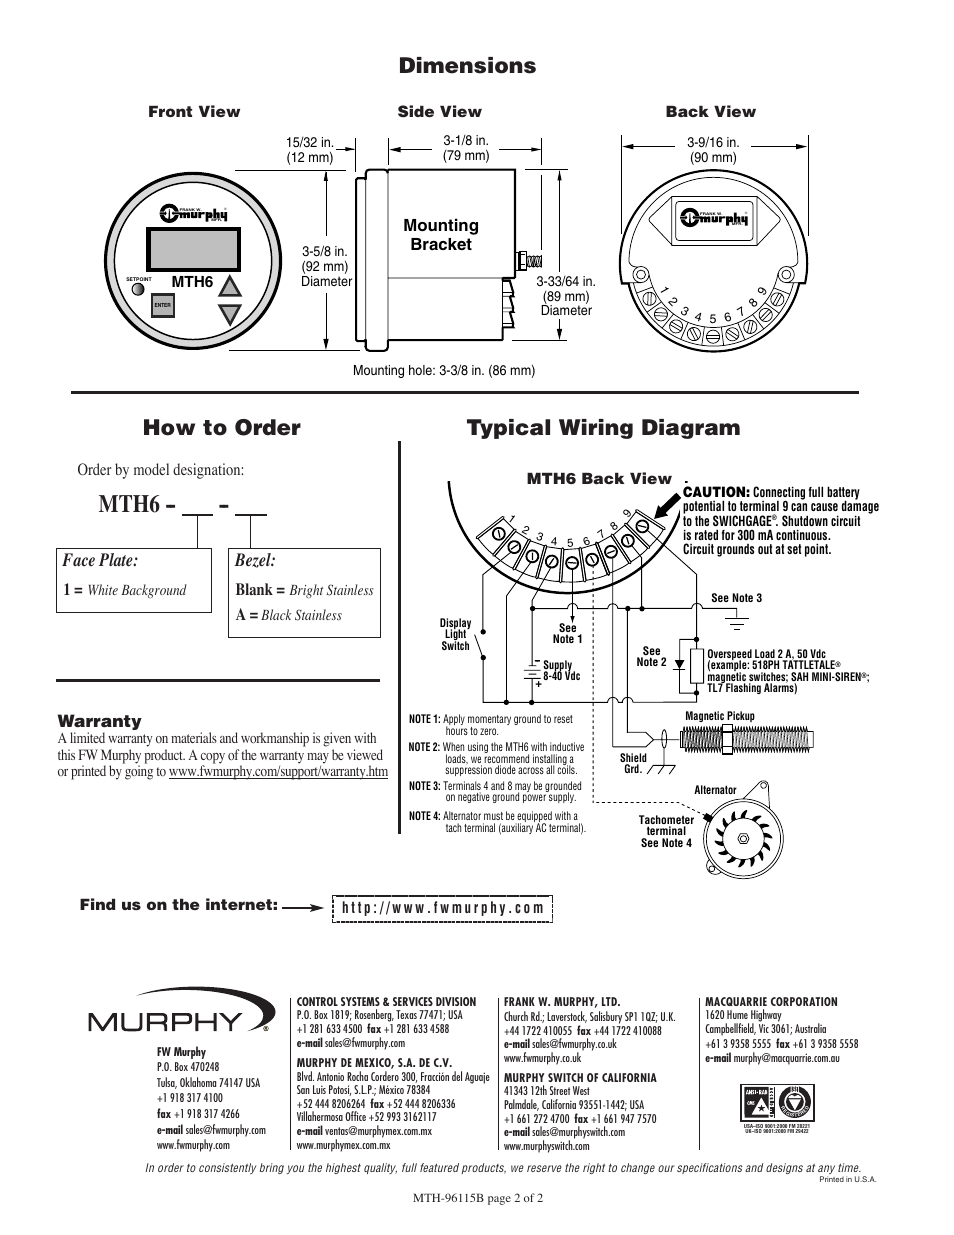 Mth6 Typical Wiring Diagram How To Order Dimensions Murphy Mounting Bracket Bezel Face Plate